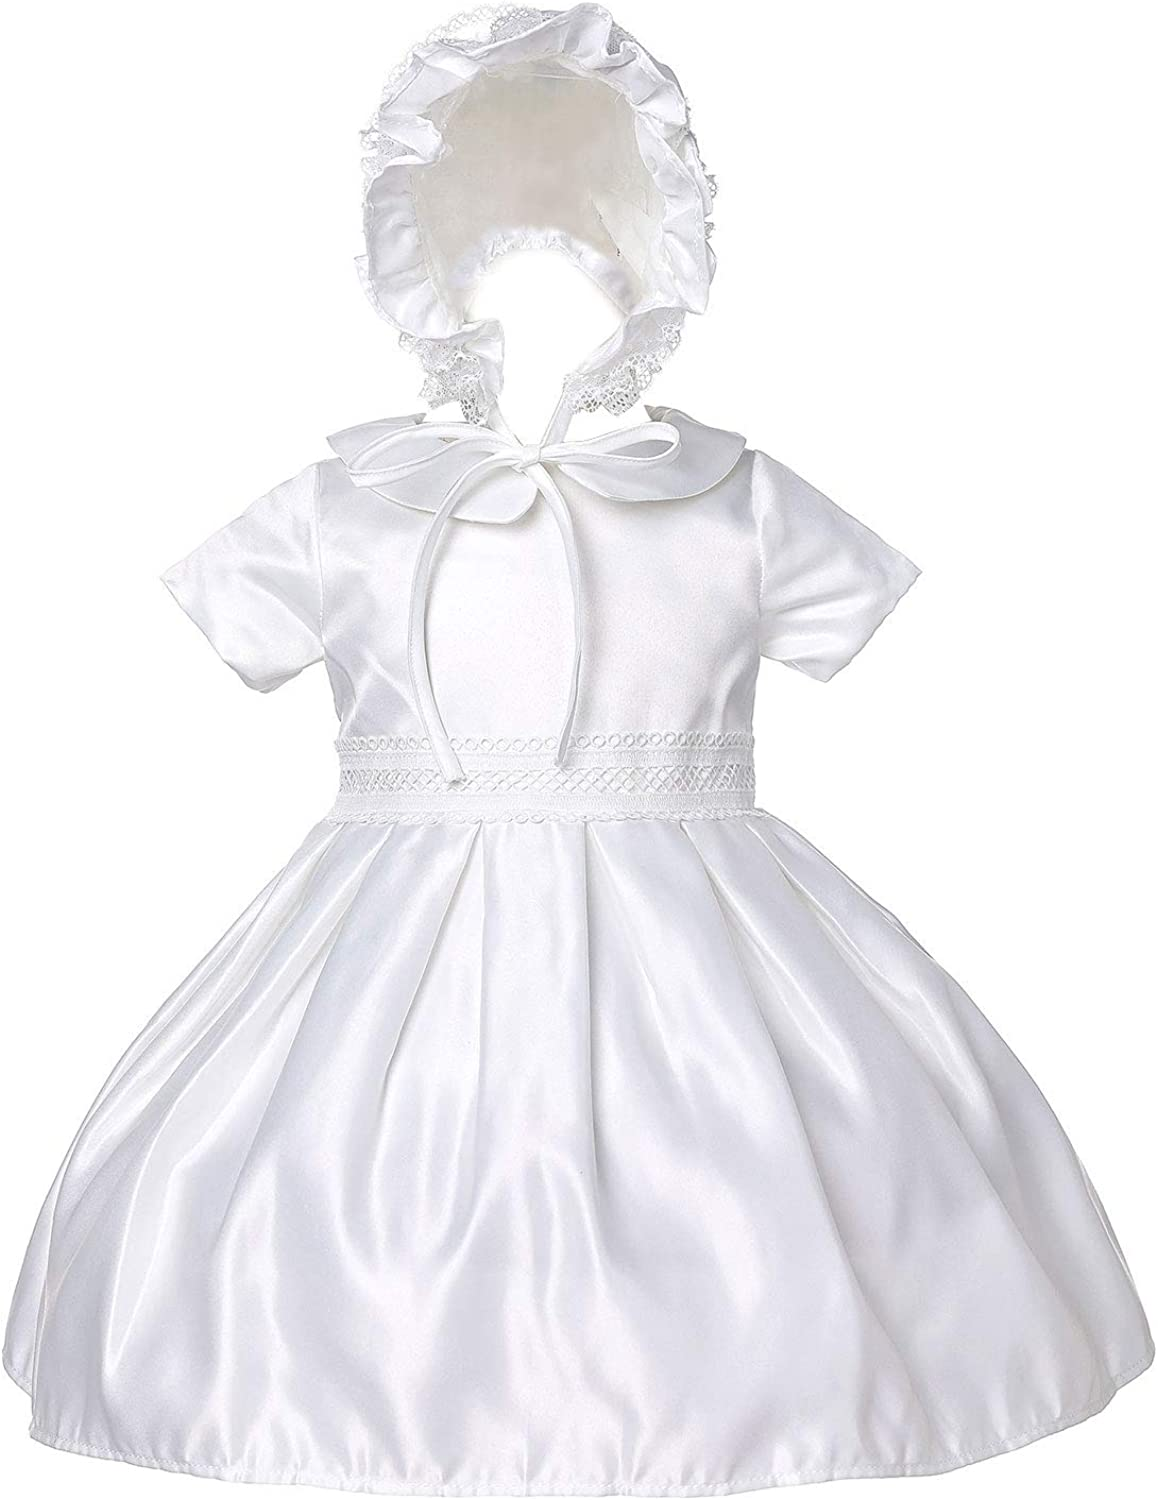 Baby Girls Baptism Dresses, Christening Gifts Gowns Outfit with Bonnet, Off White